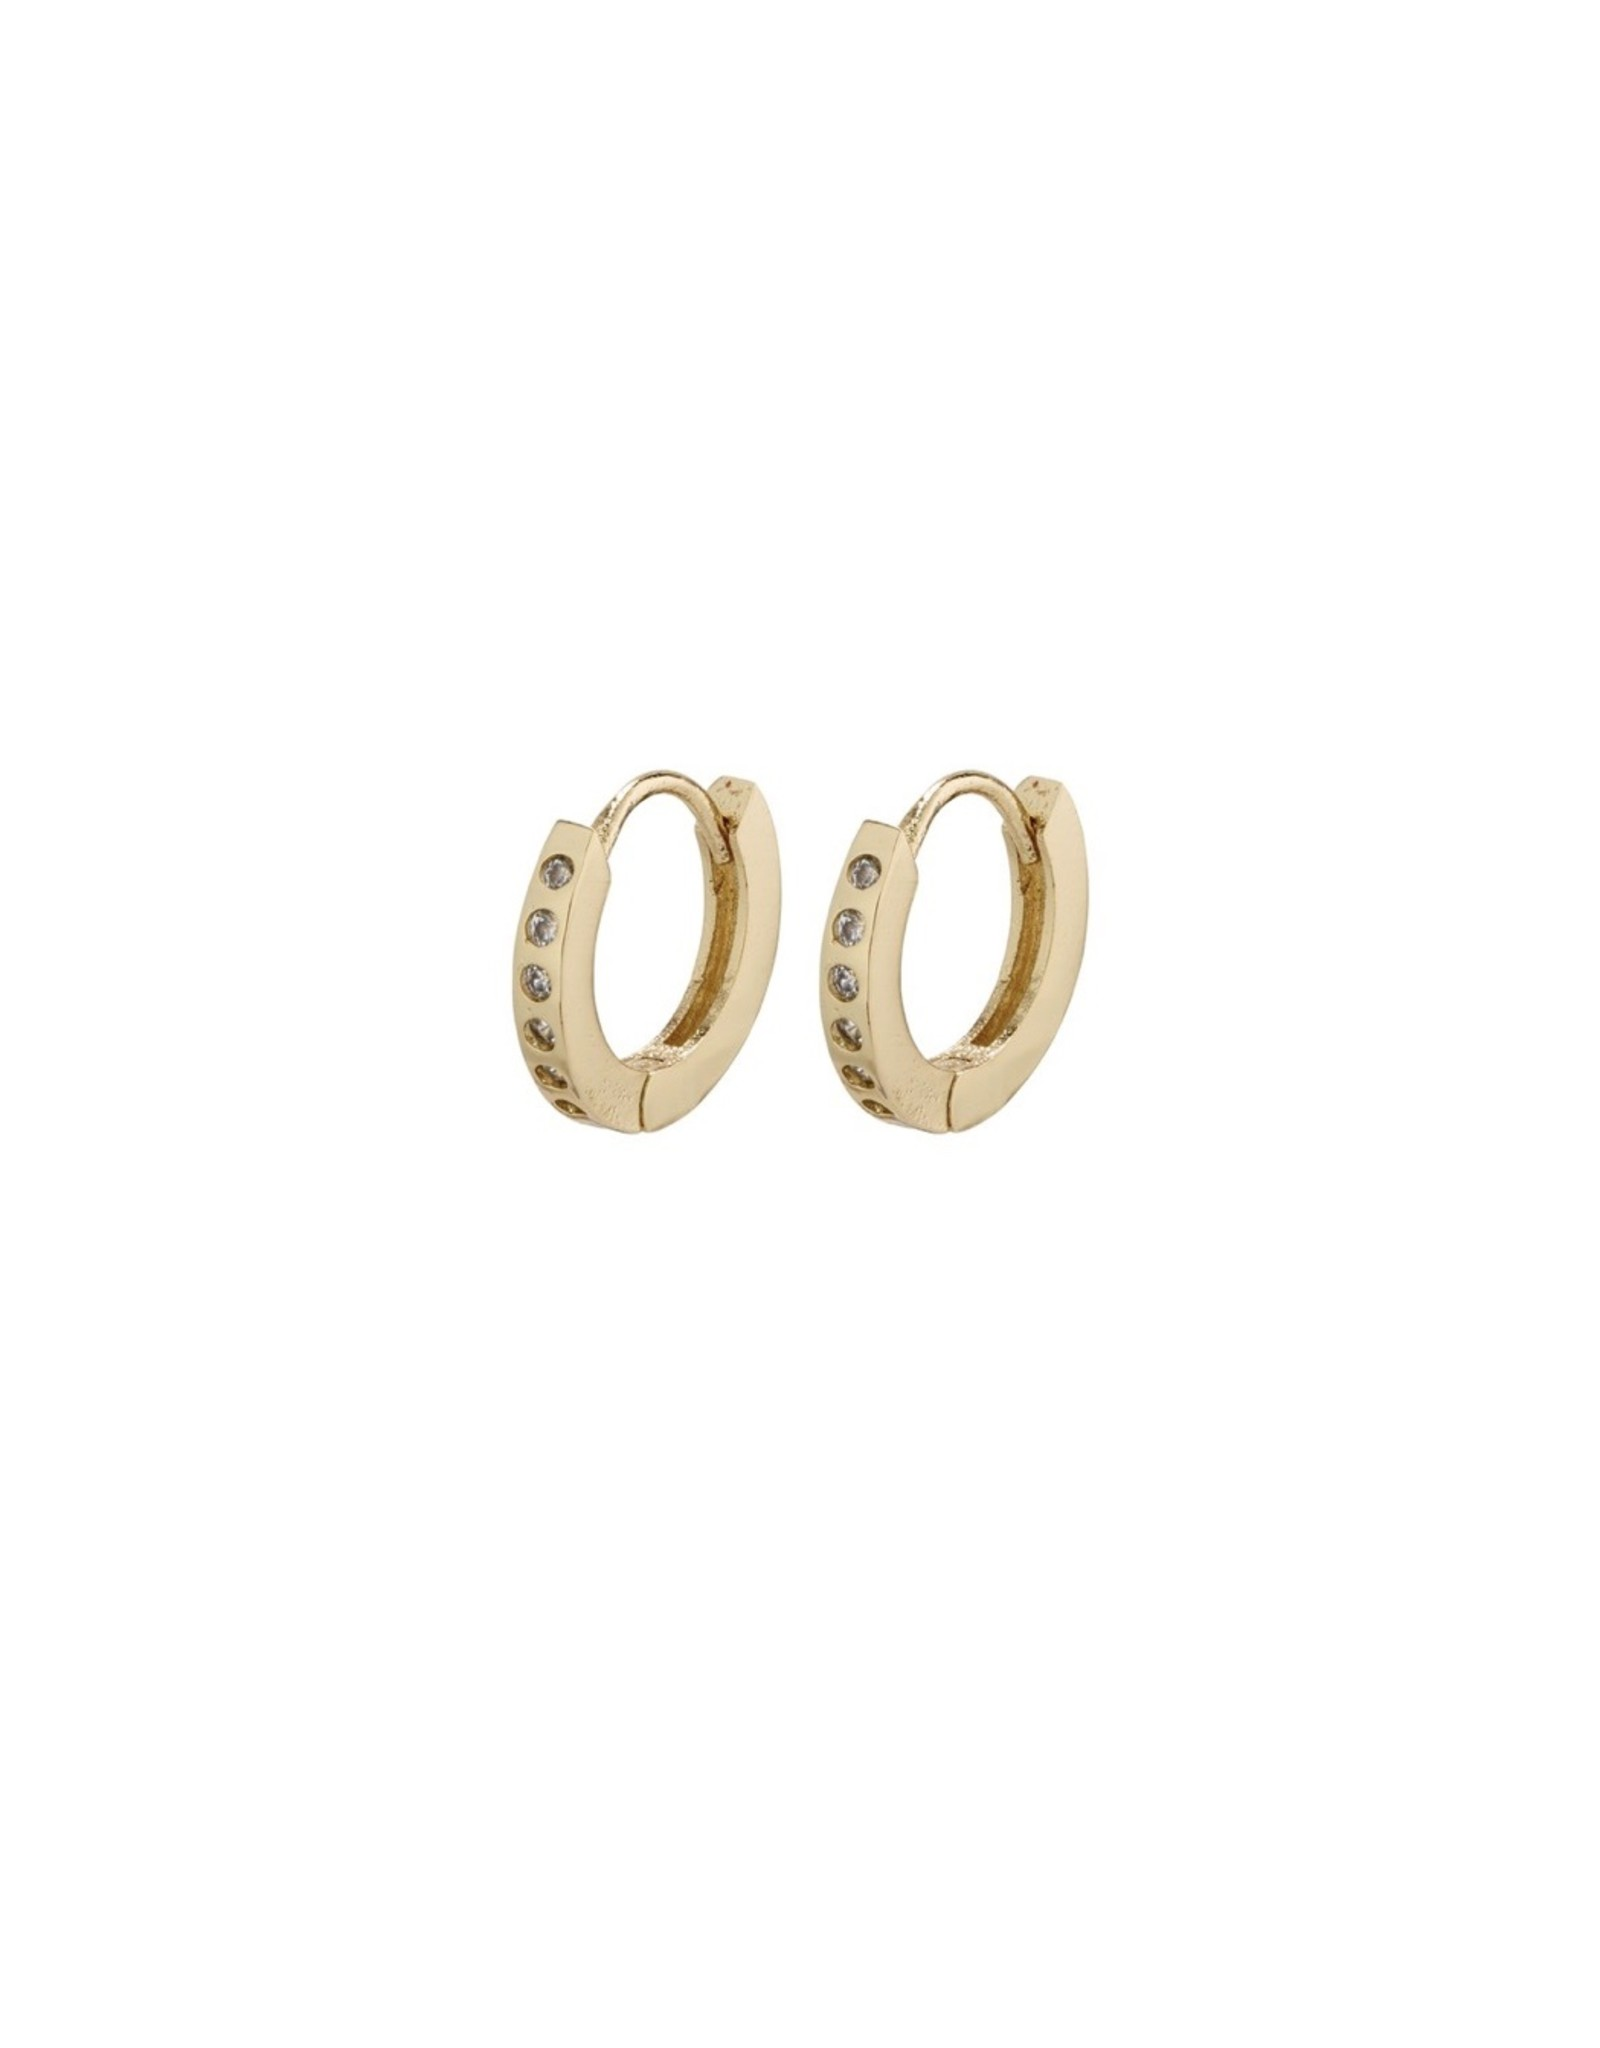 Pilgrim Pilgrim Earrings, Gry Small Hoops, Gold Plated